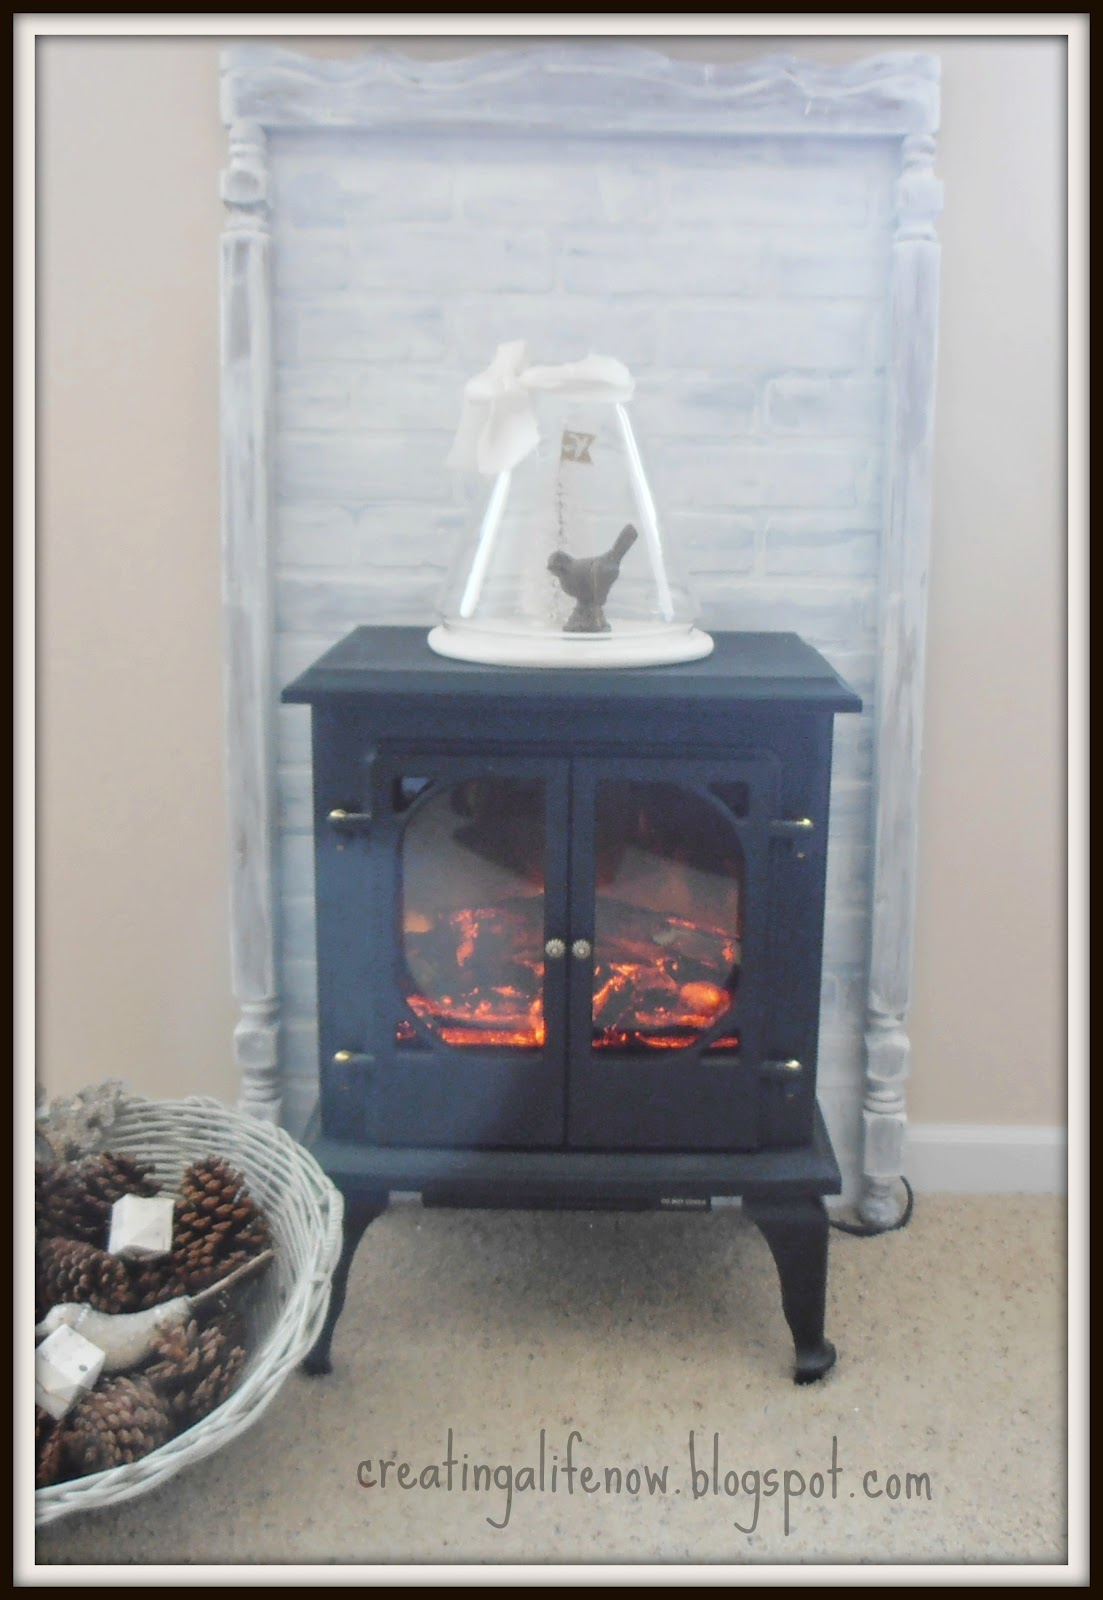 creating a life the faux fireplace mantel